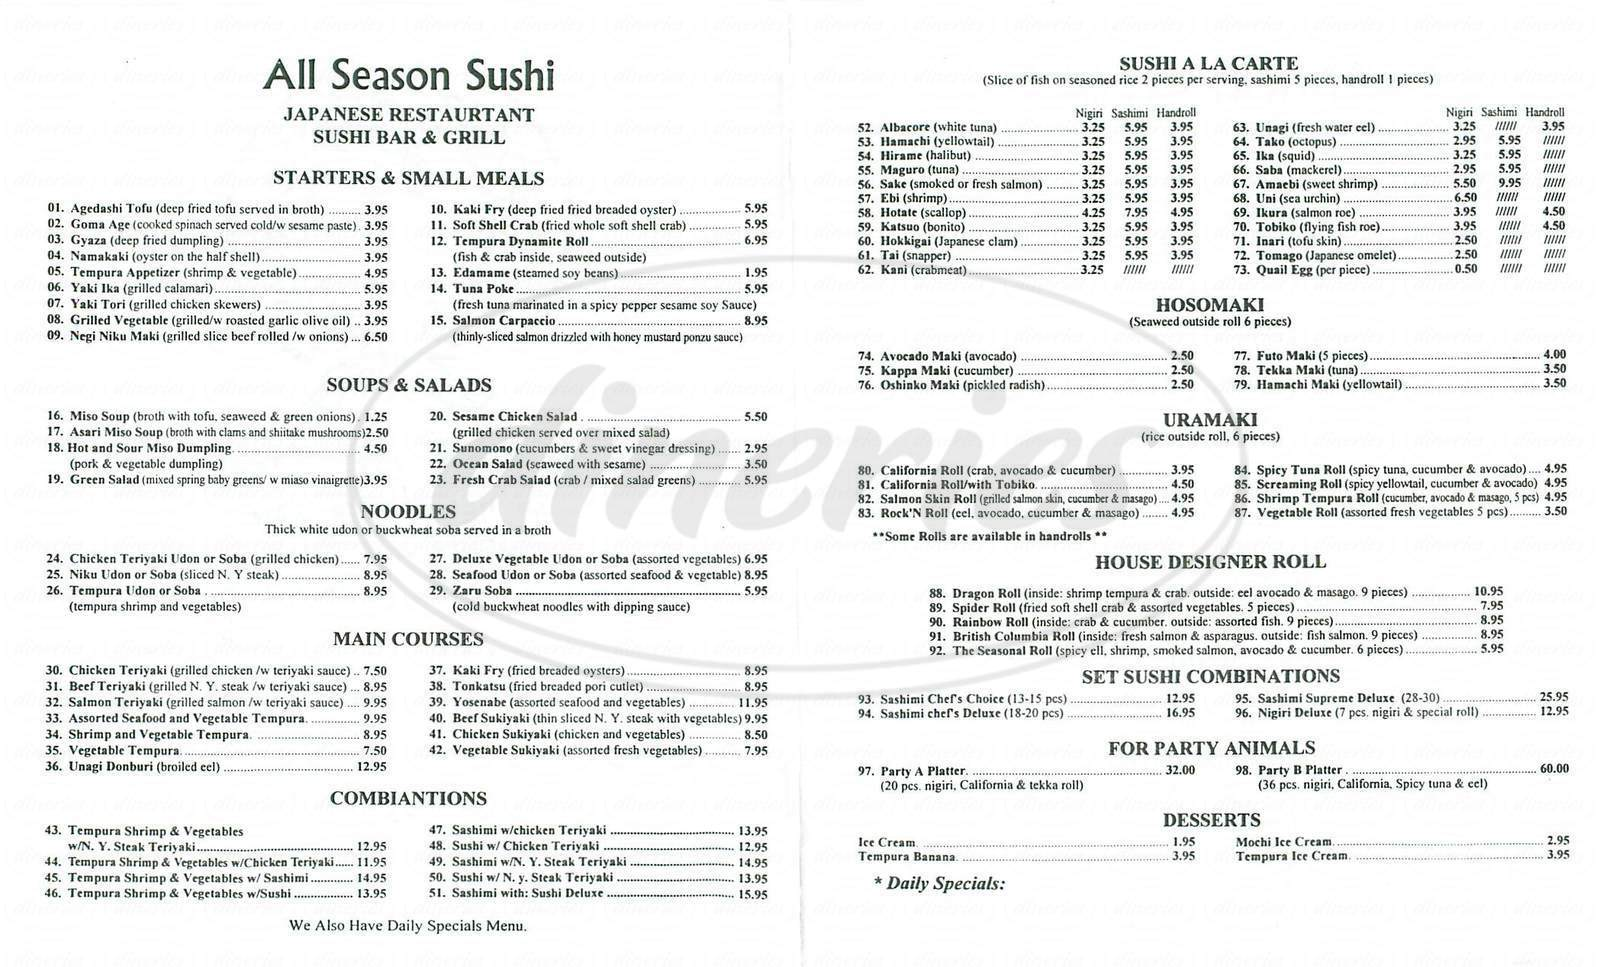 menu for All Season Sushi